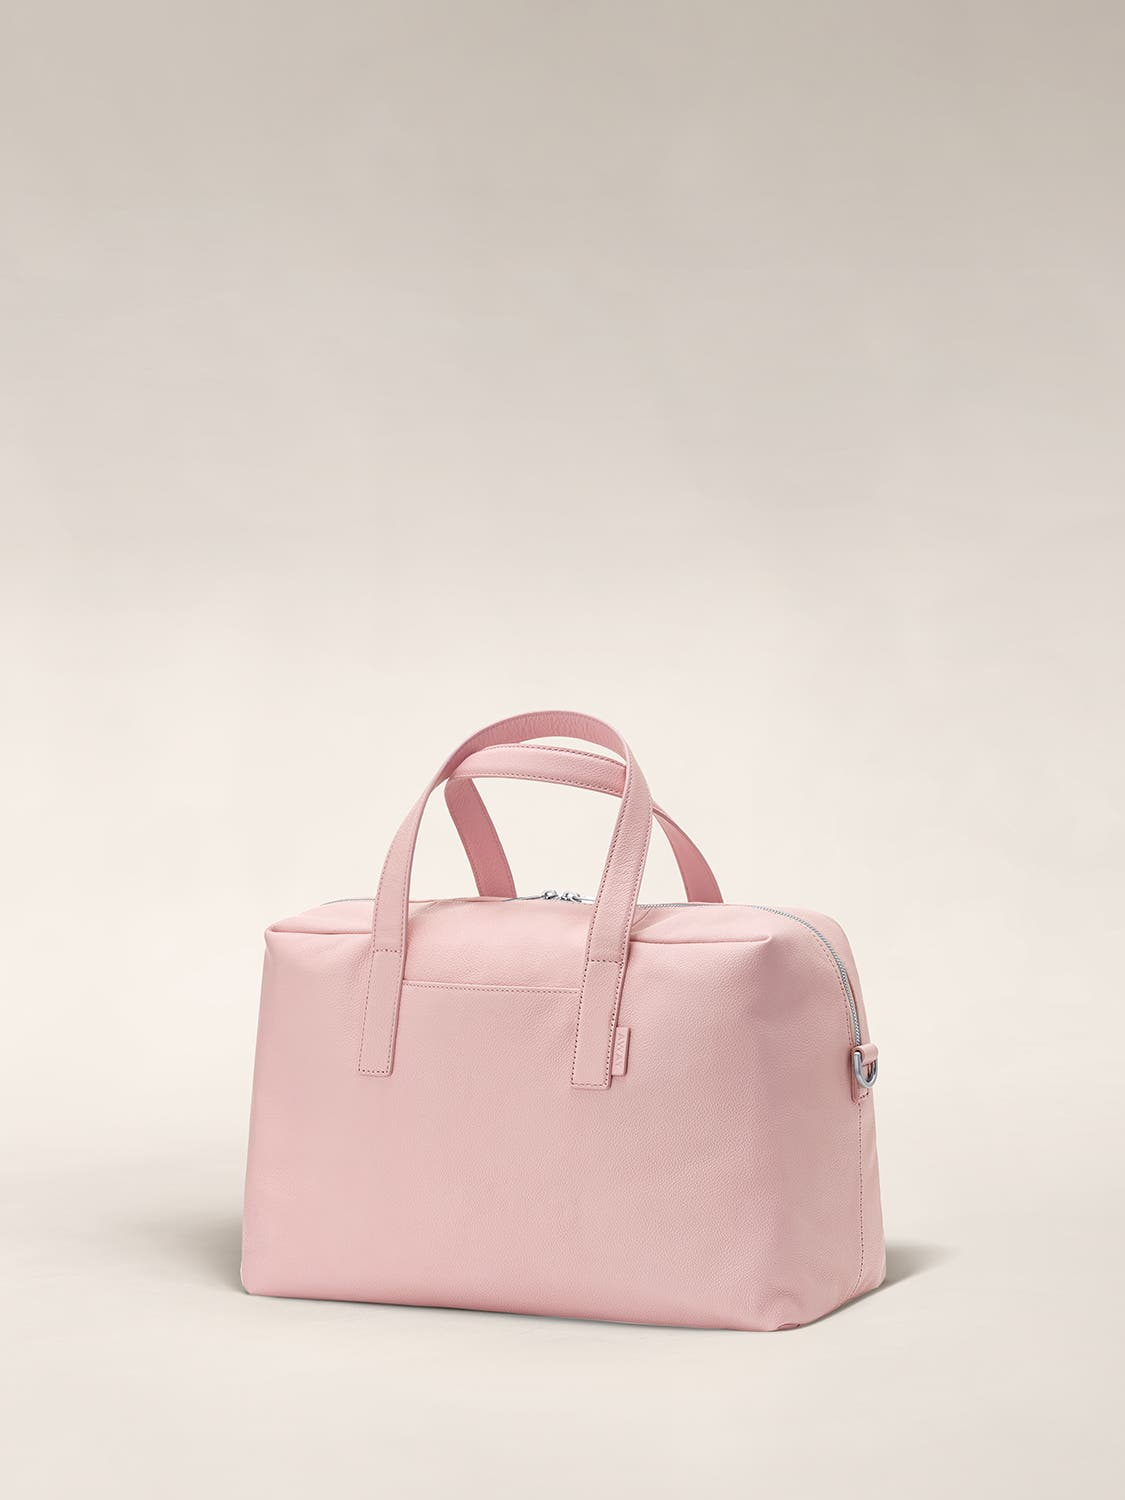 Angled view of a blush duffle bag with crossed straps.